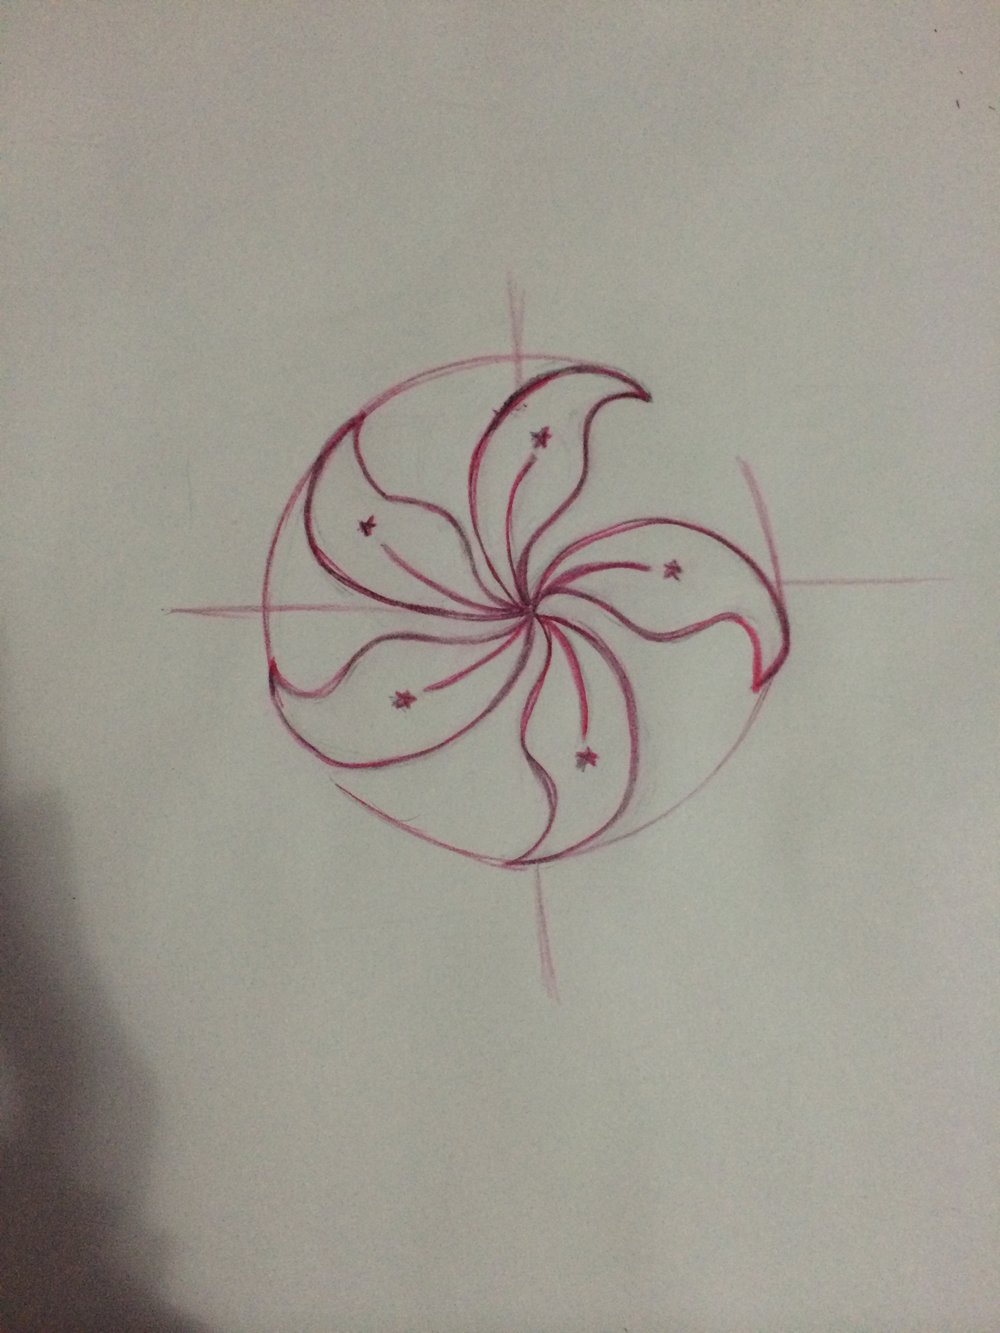 A teeny little bauhinia because I'm a Hong Kong kid and proud to be.